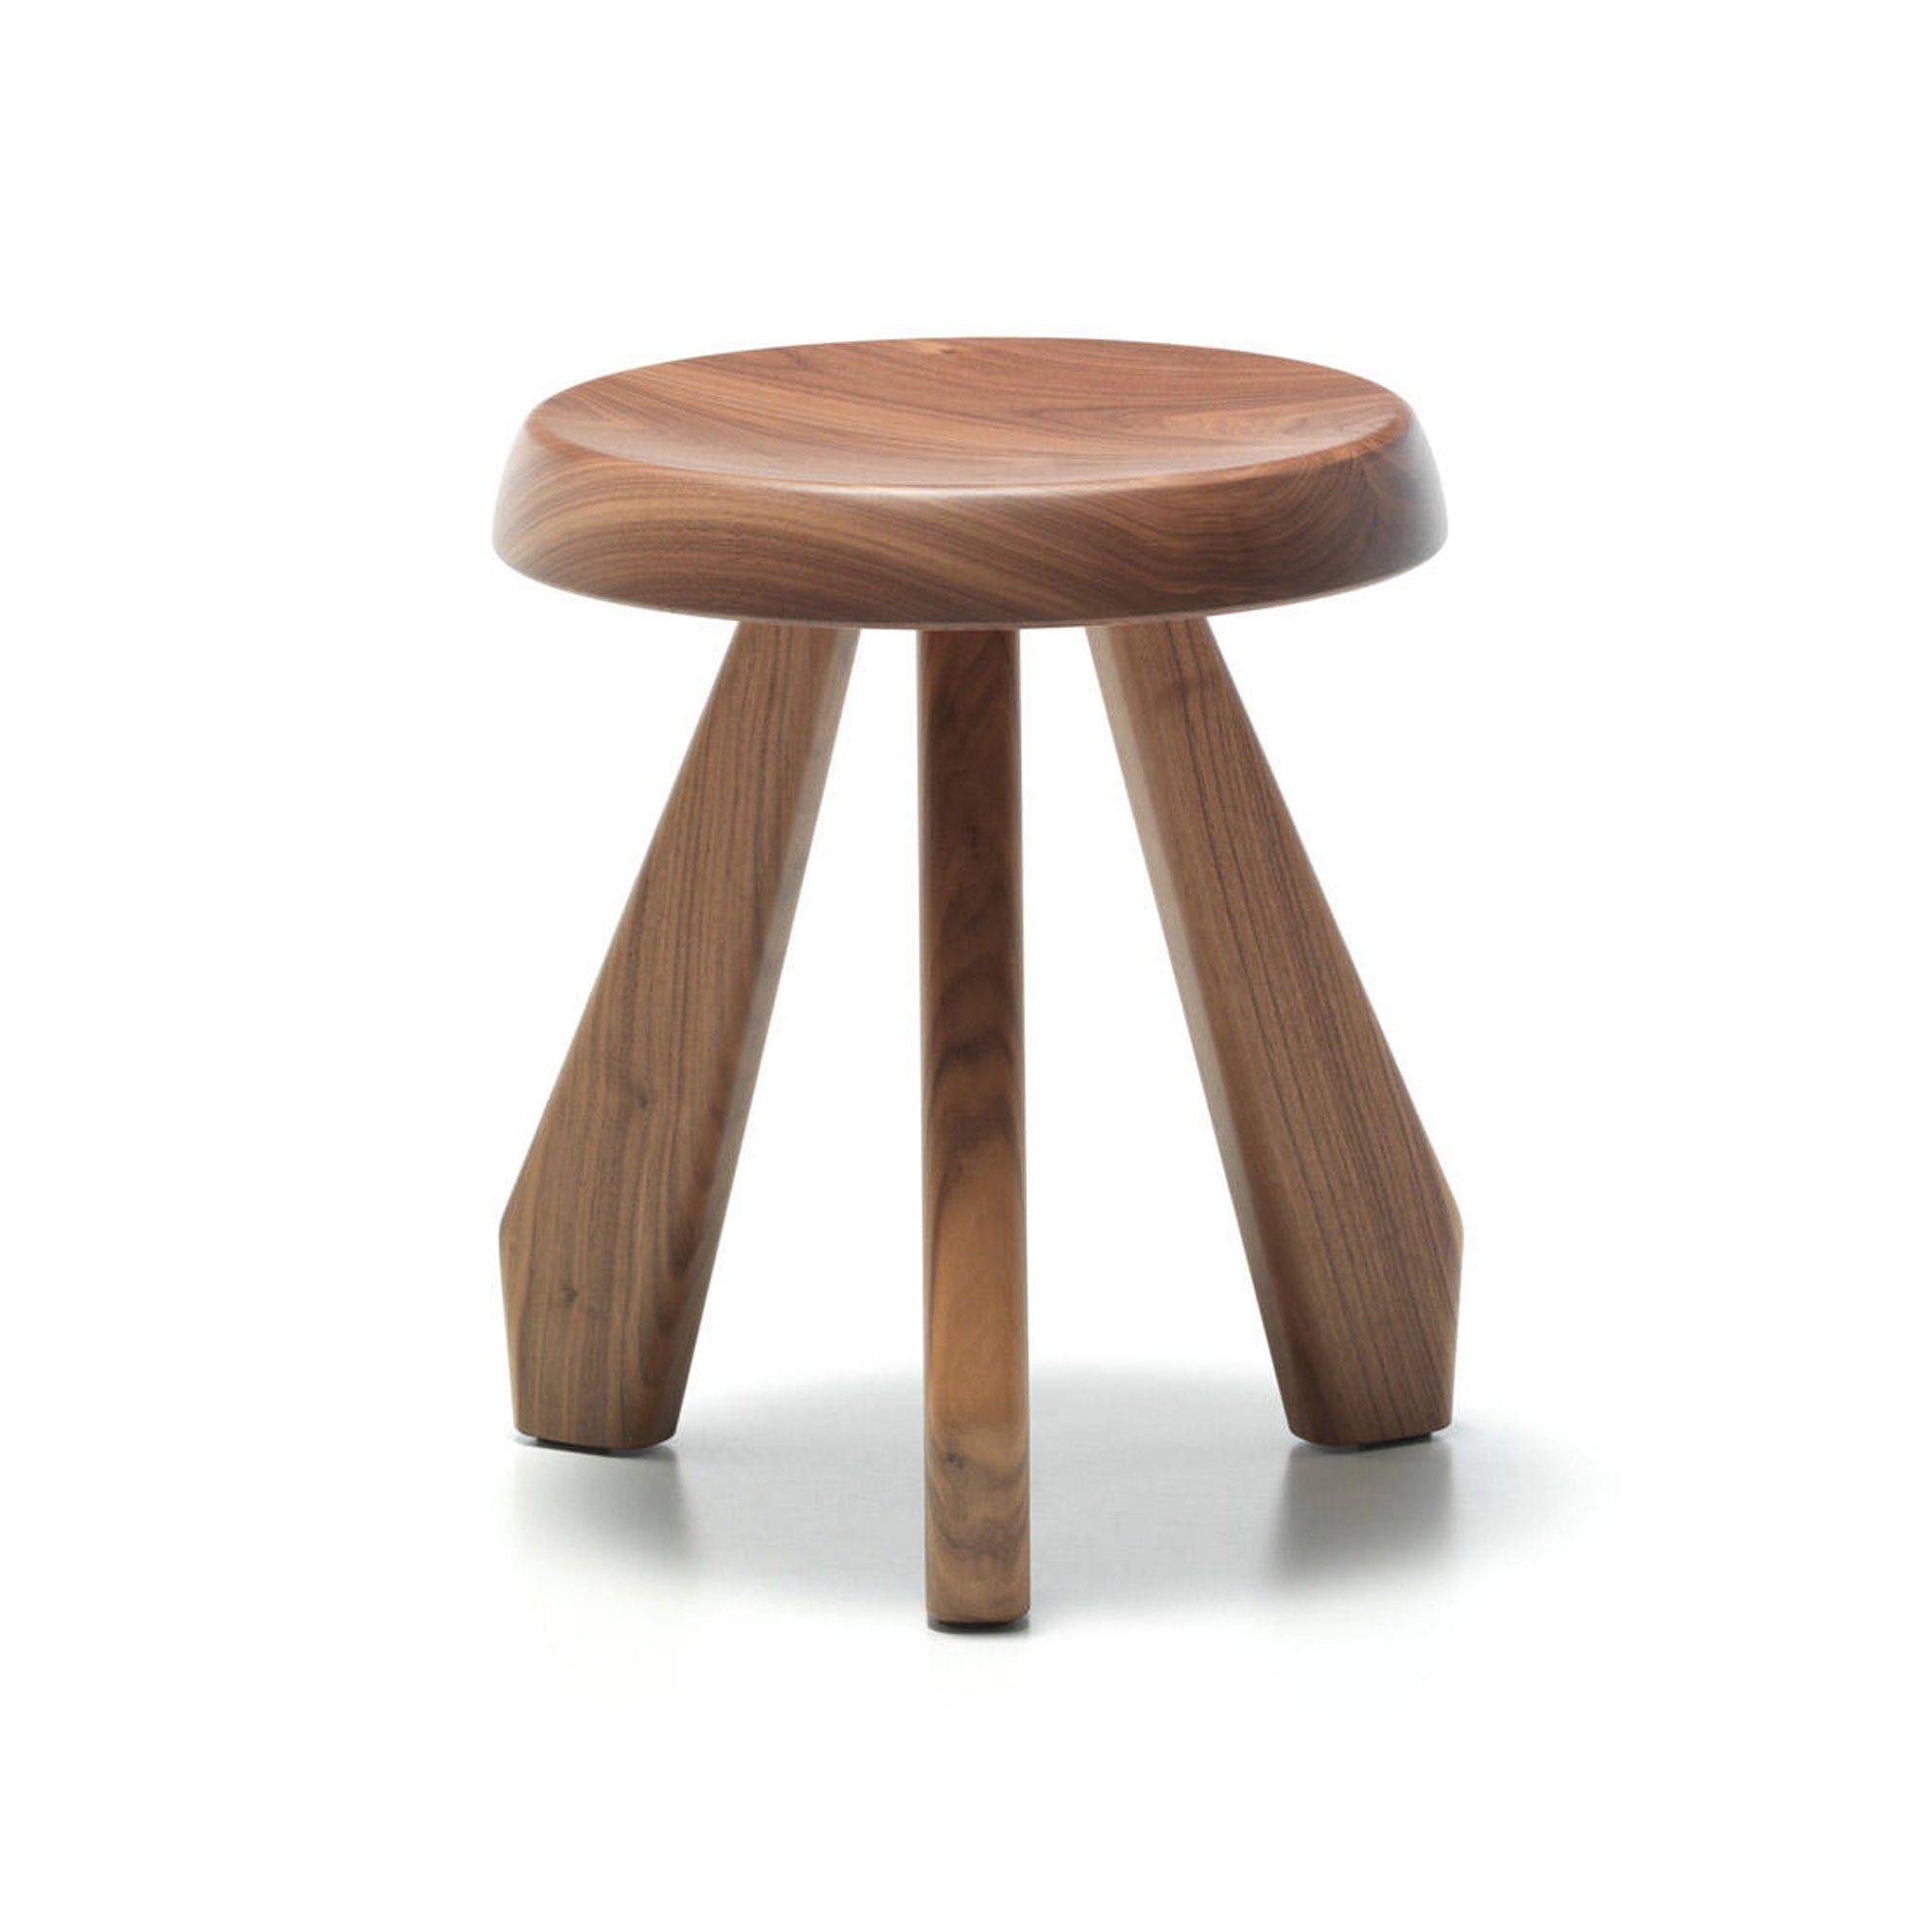 523 Tabouret Méribel - American Walnut